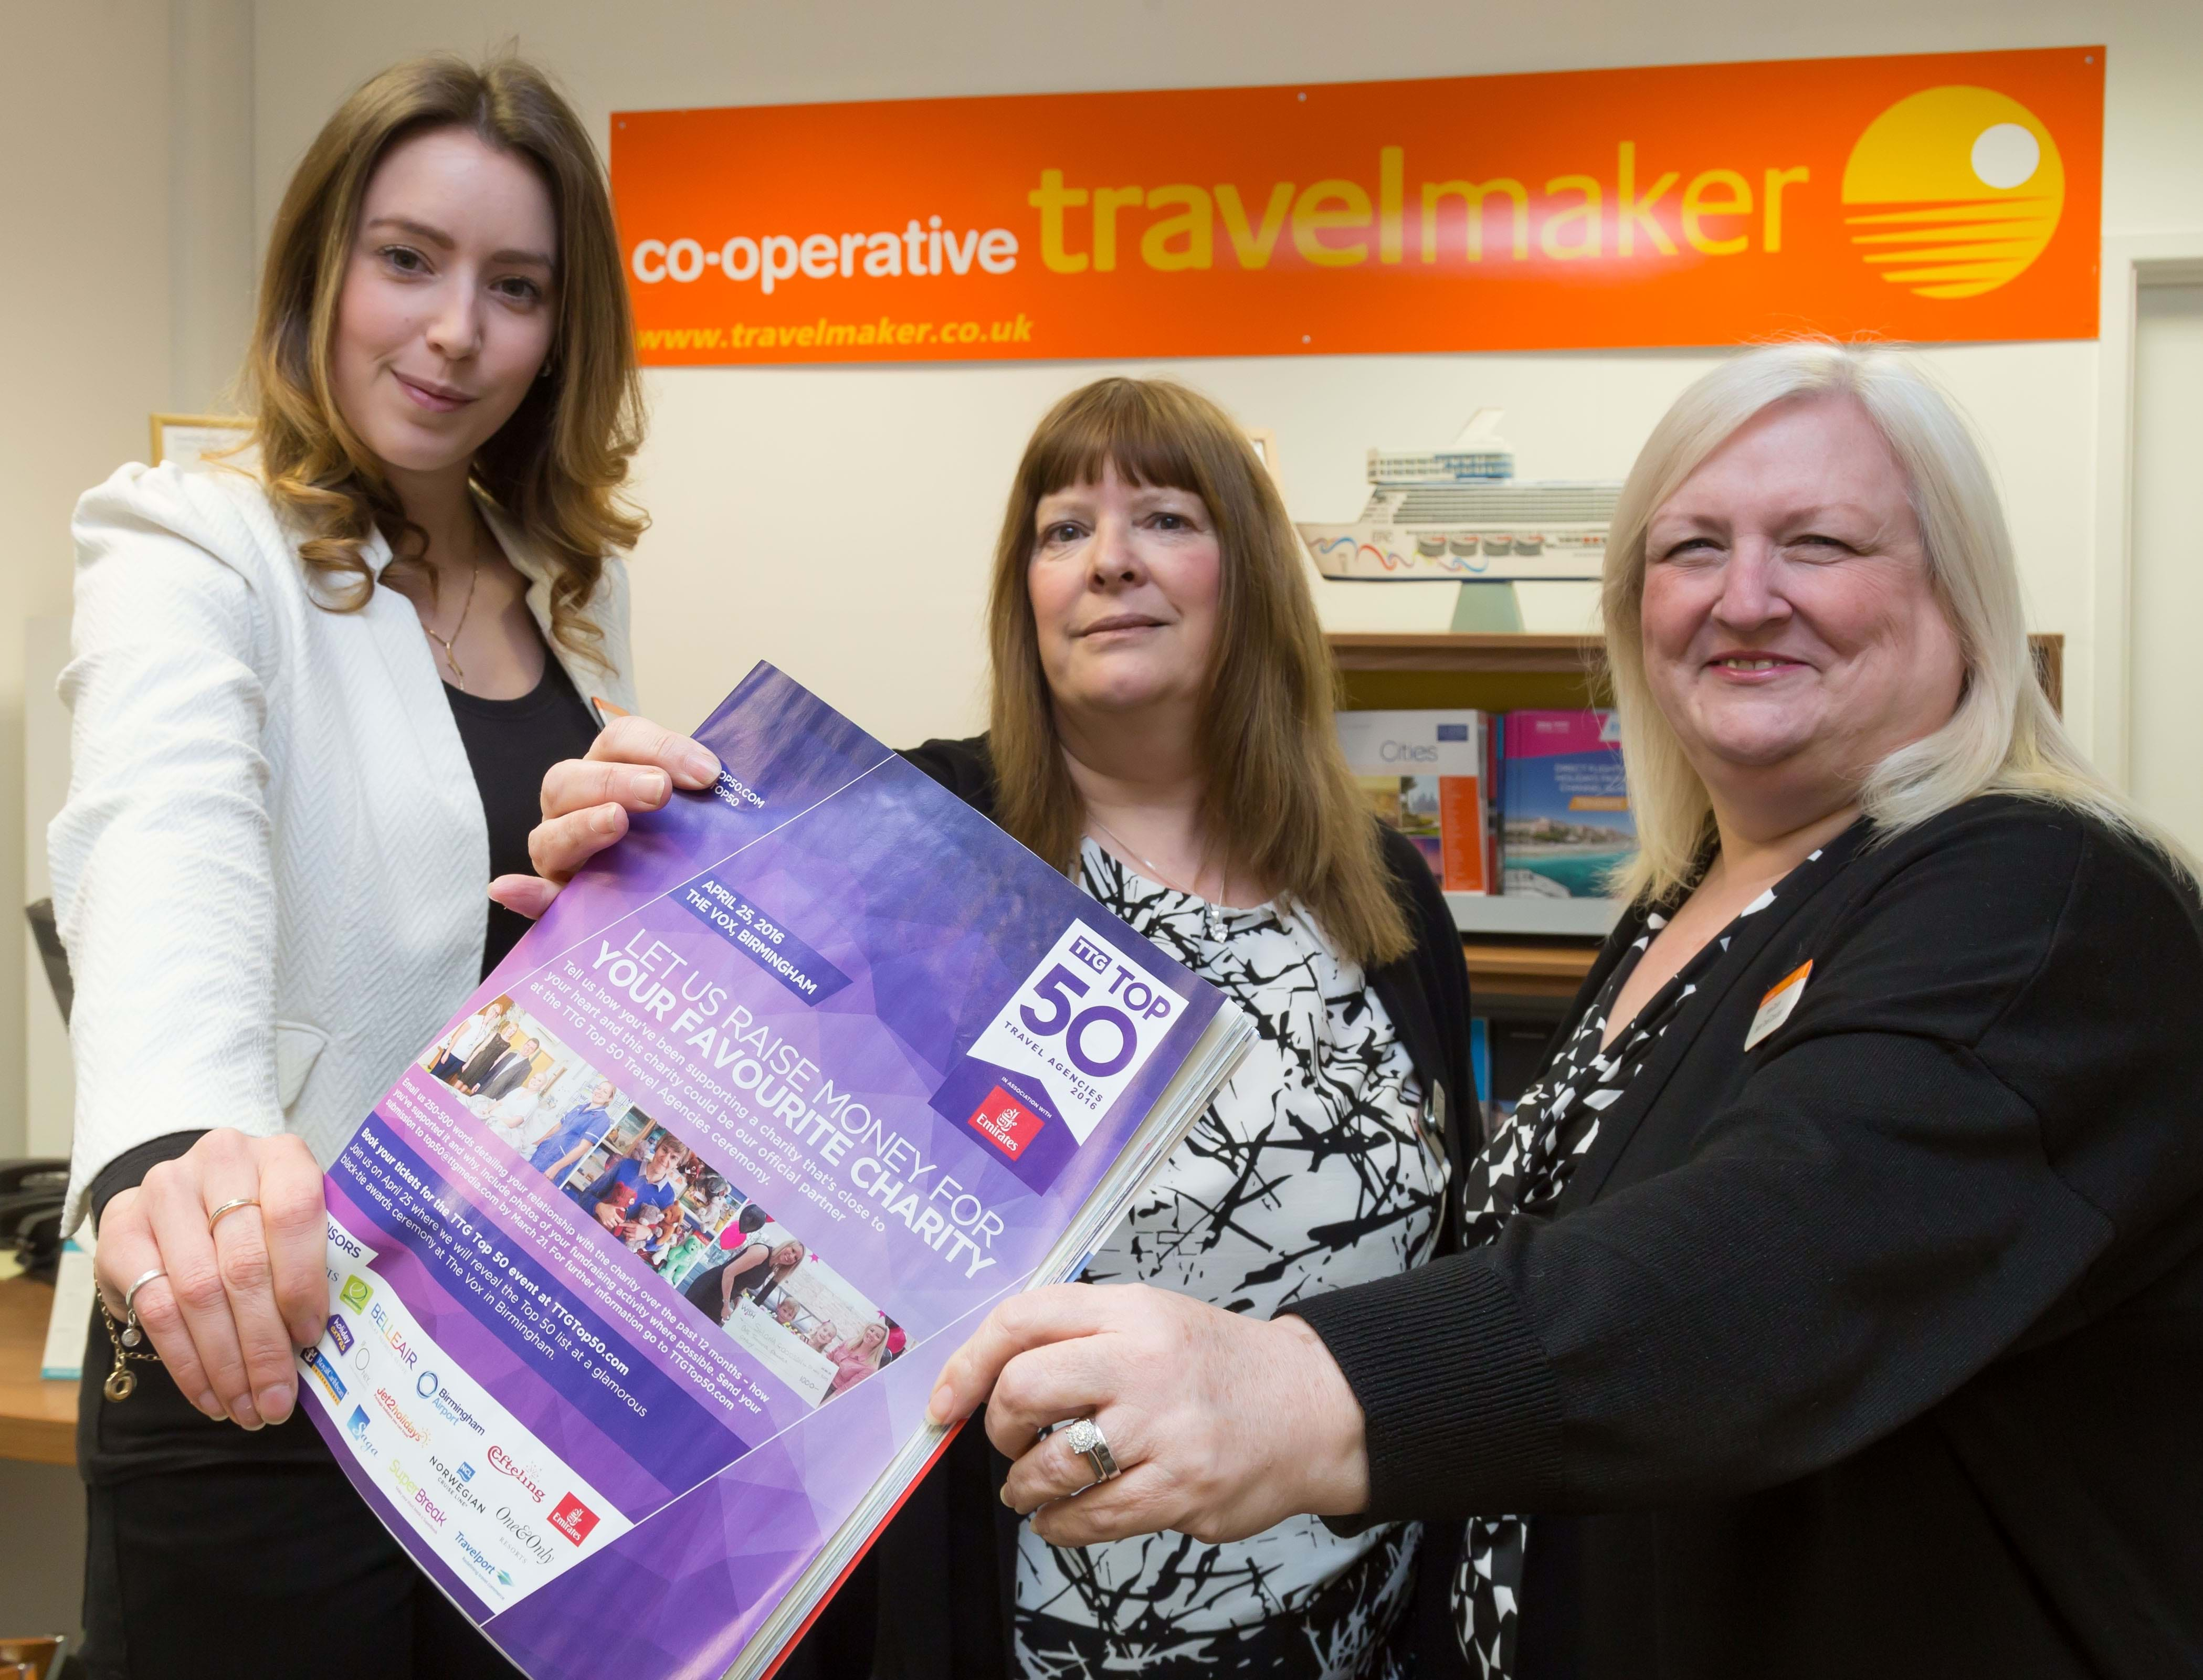 Travelmaker in Jersey and Guernsey shortlisted for power list of nation's best agencies